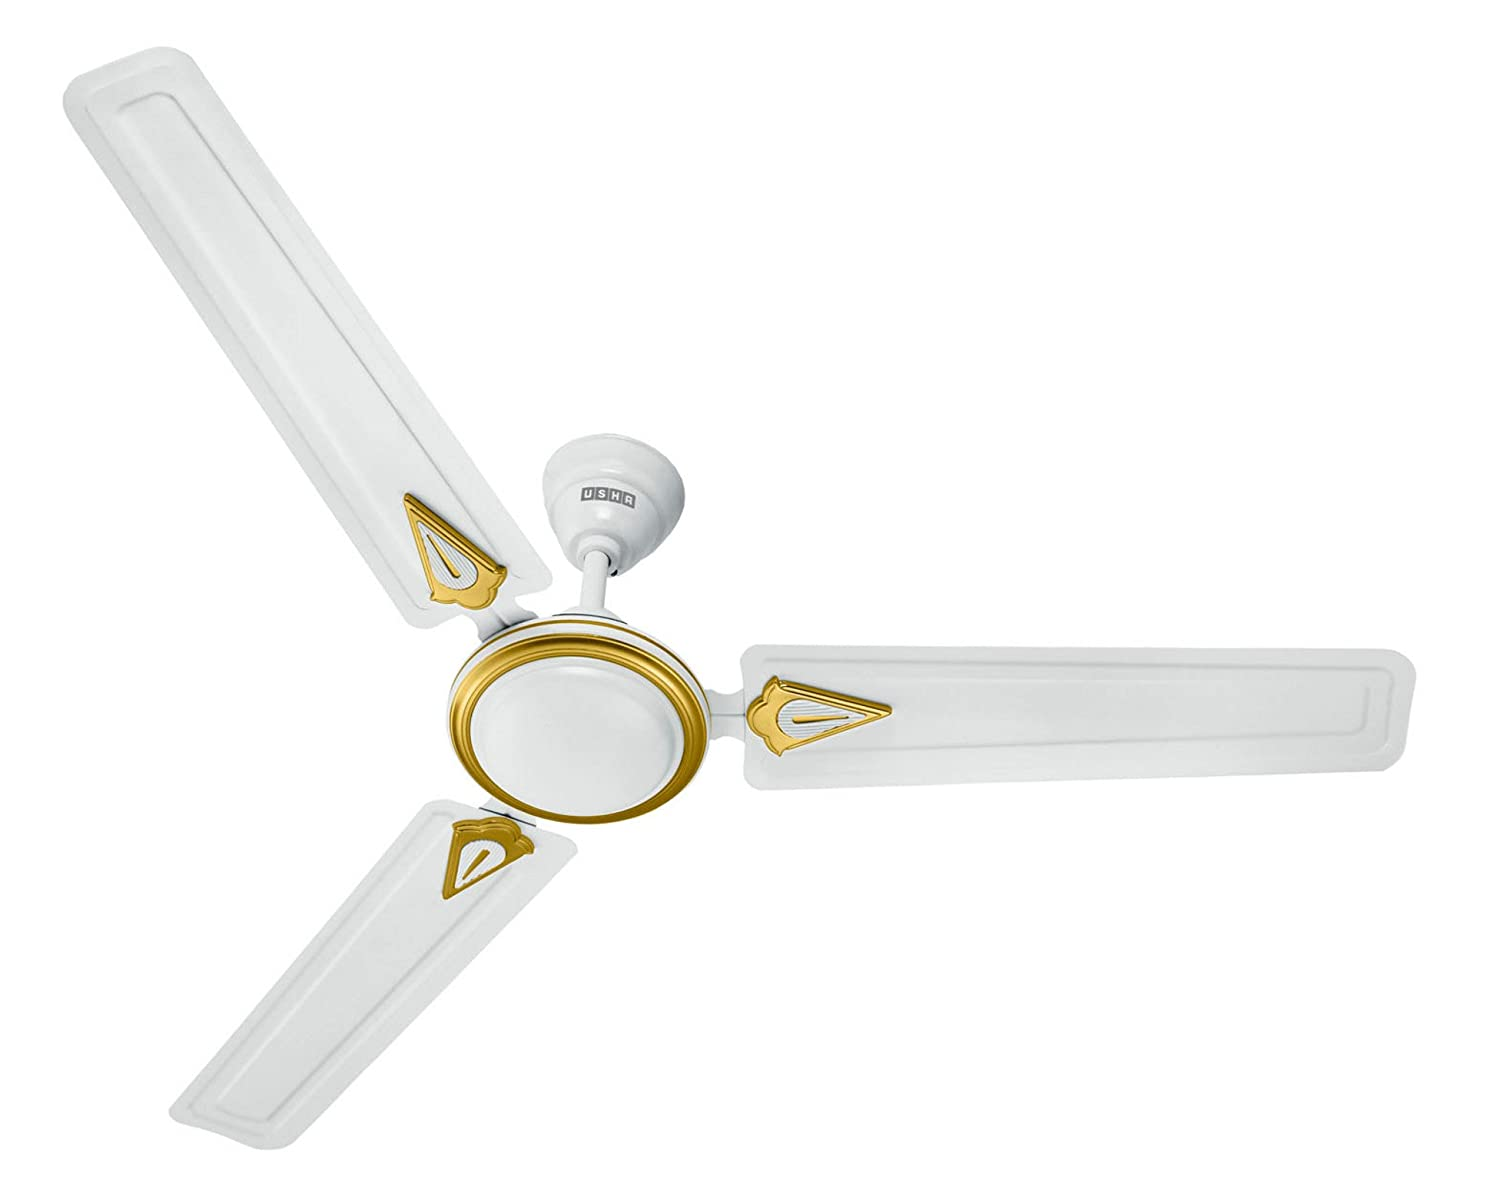 Buy usha new trump 1200mm ceiling fan without regulator white buy usha new trump 1200mm ceiling fan without regulator white online at low prices in india amazon aloadofball Image collections